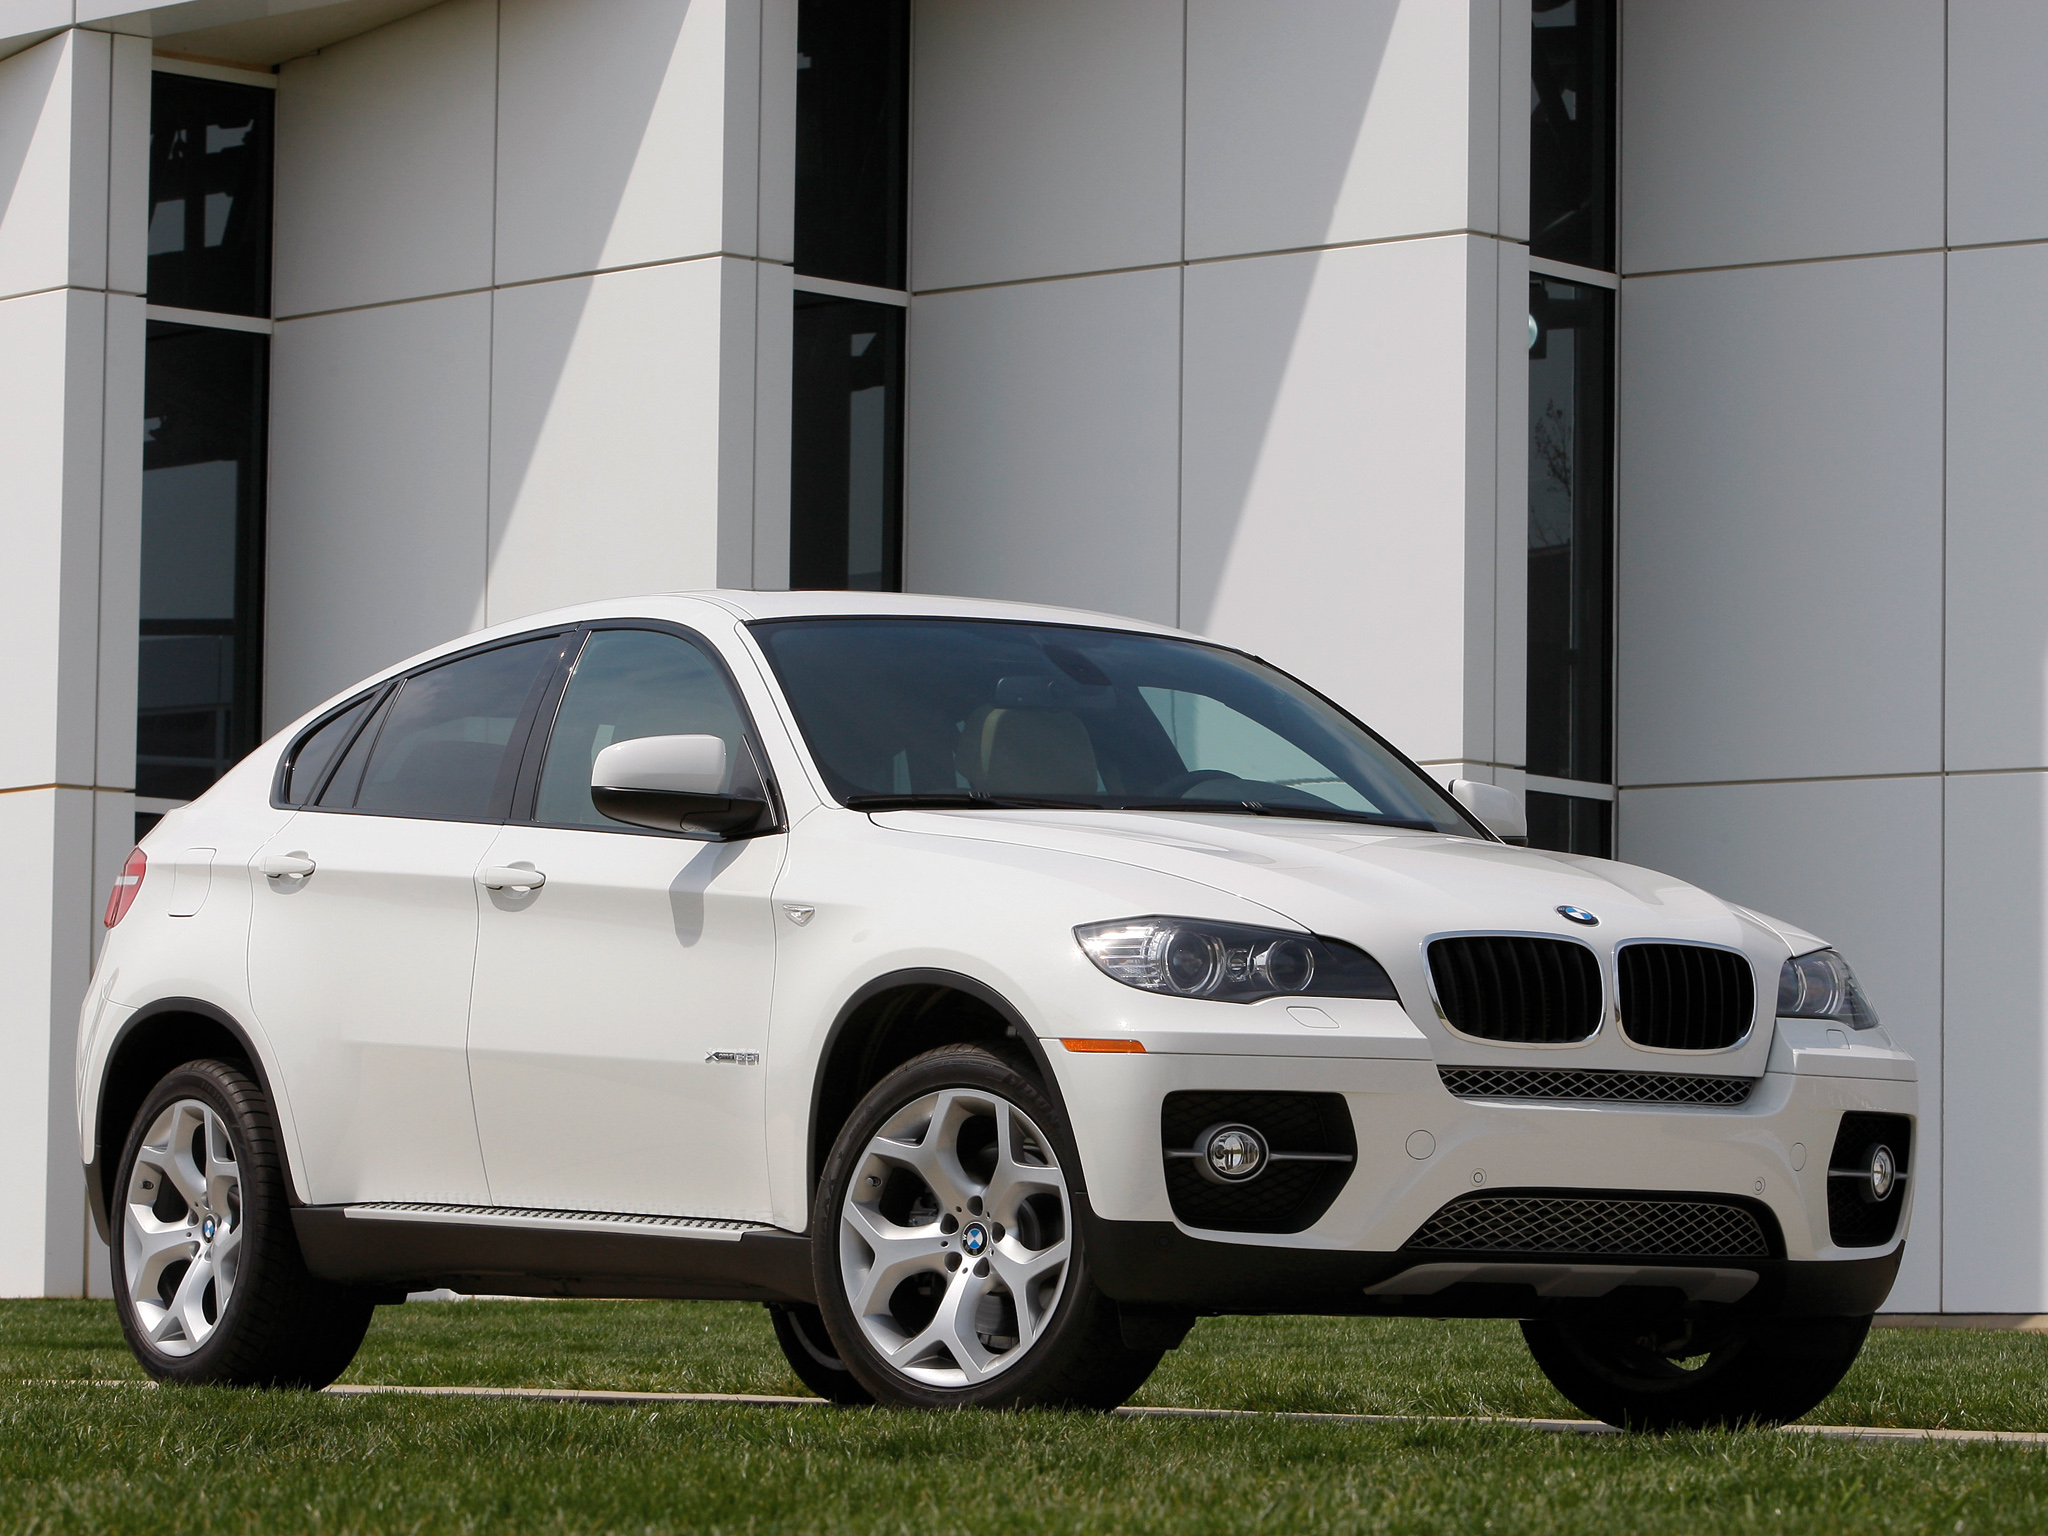 BMW X6 xDrive35i 2008 photo - 10